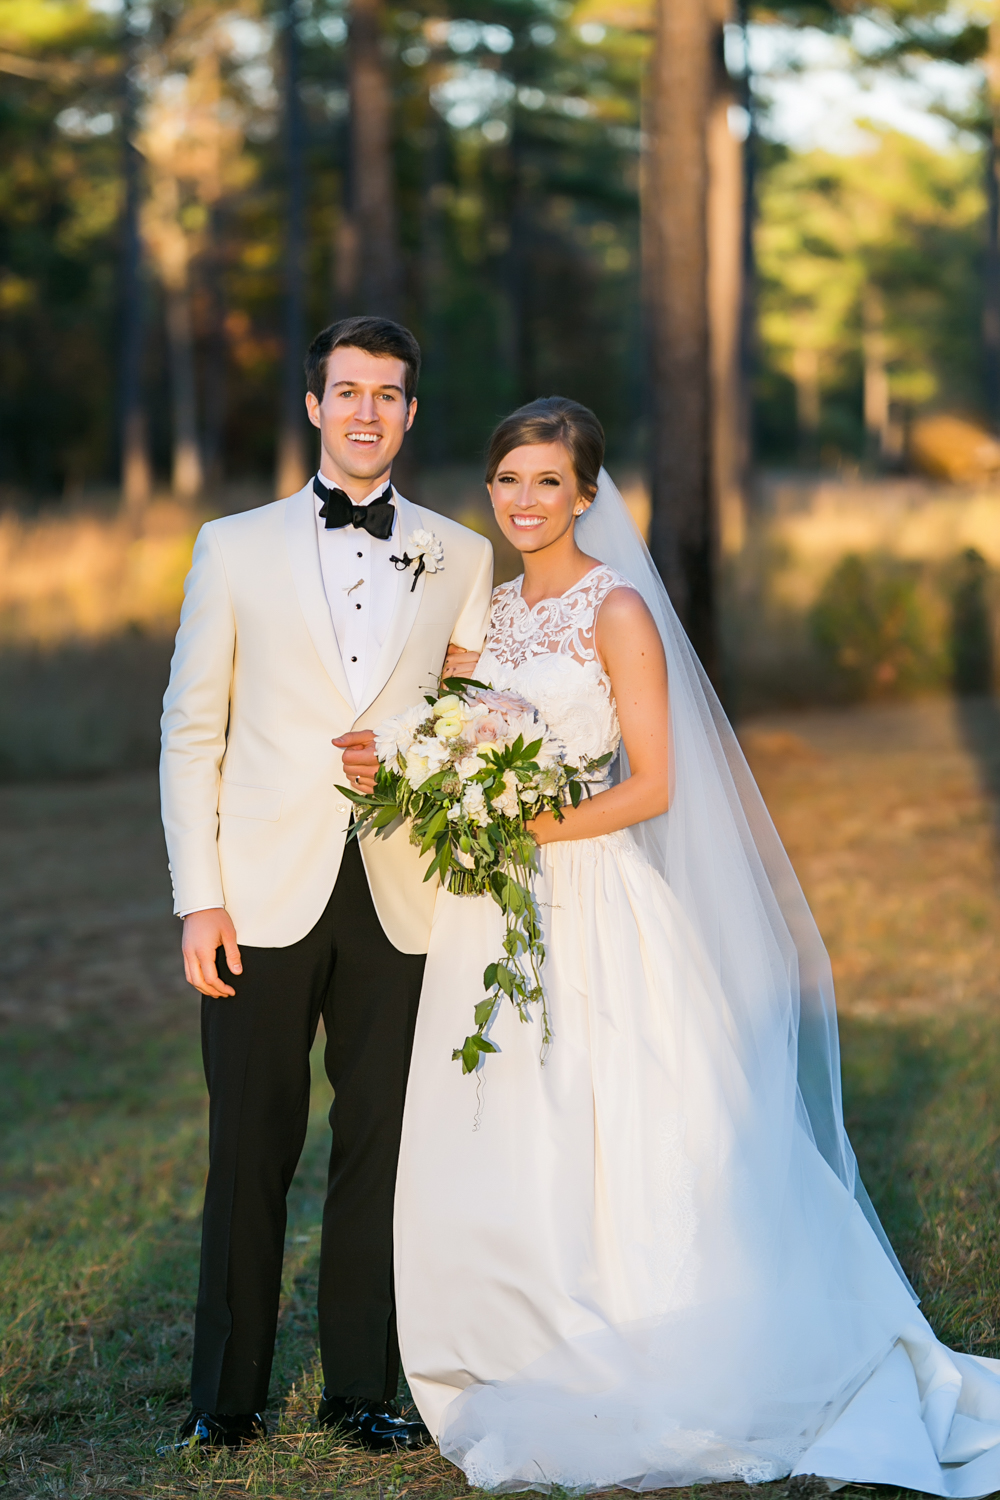 Meet the Bride and the Groom